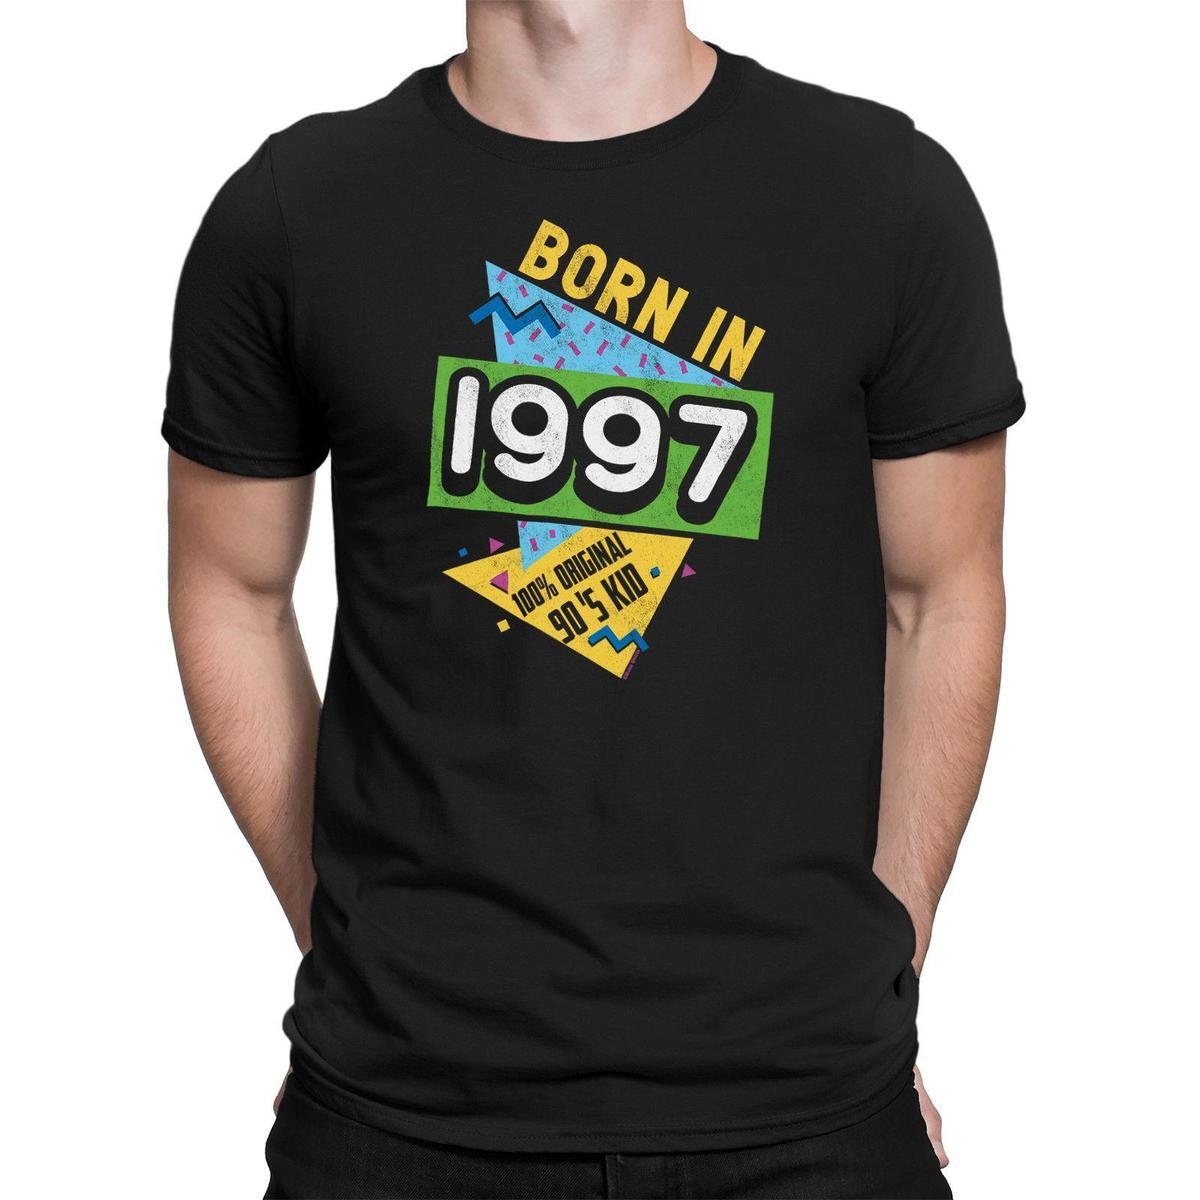 Born In 1997 Mens 21st Birthday Idea Novelty T Shirt 90s Nineties Retro Mans Funky Shirts Cool From Lefan04 1467